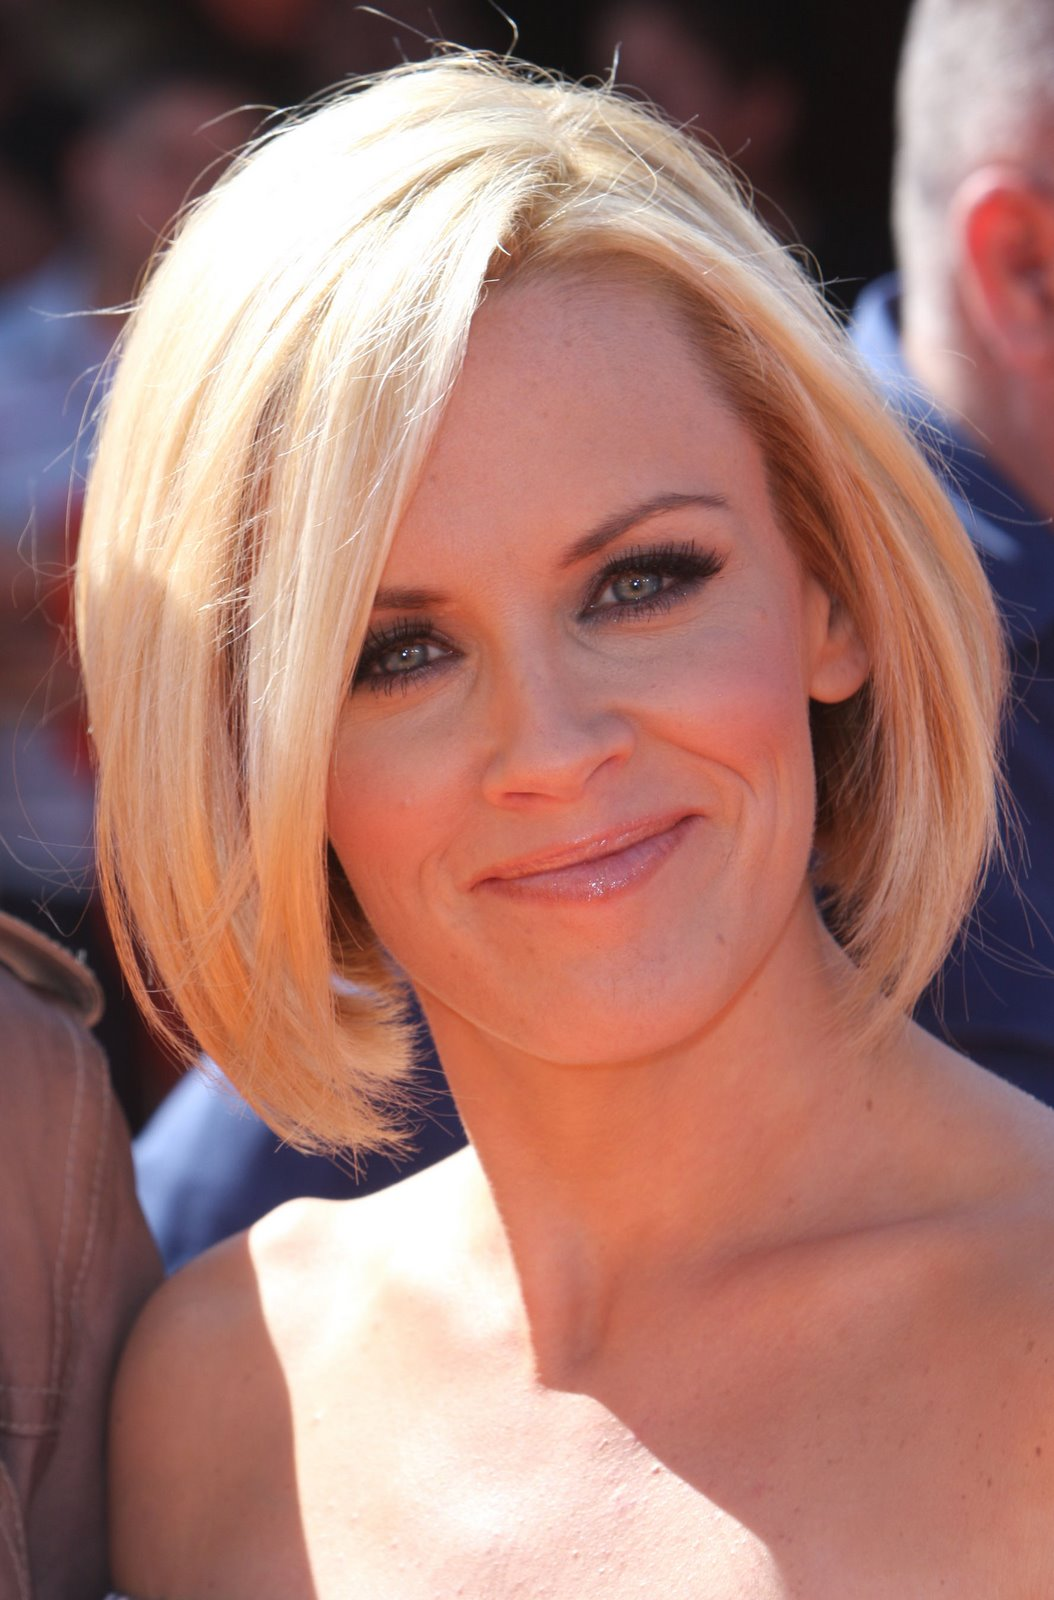 Short To Medium Hairstyles For Women Over 50: 30 Beautiful Short Medium Hairstyles